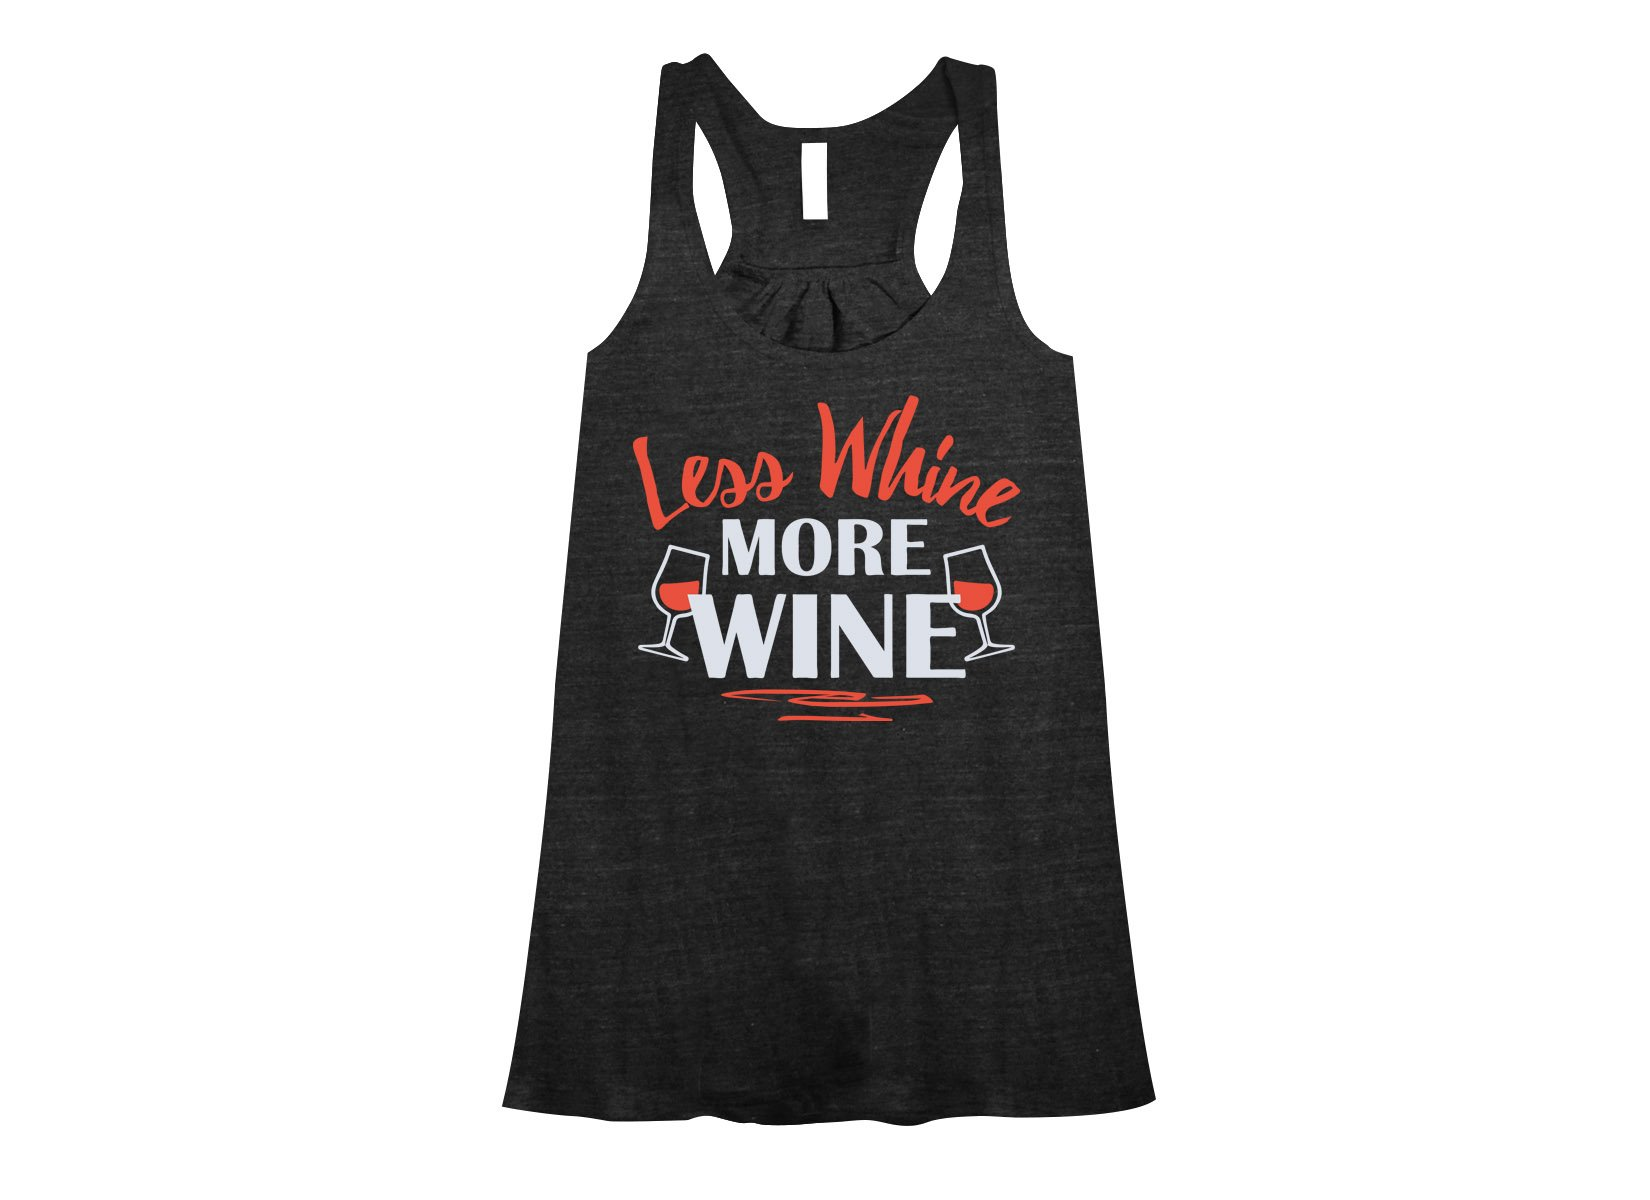 Less Whine More Wine on Womens Tanks T-Shirt